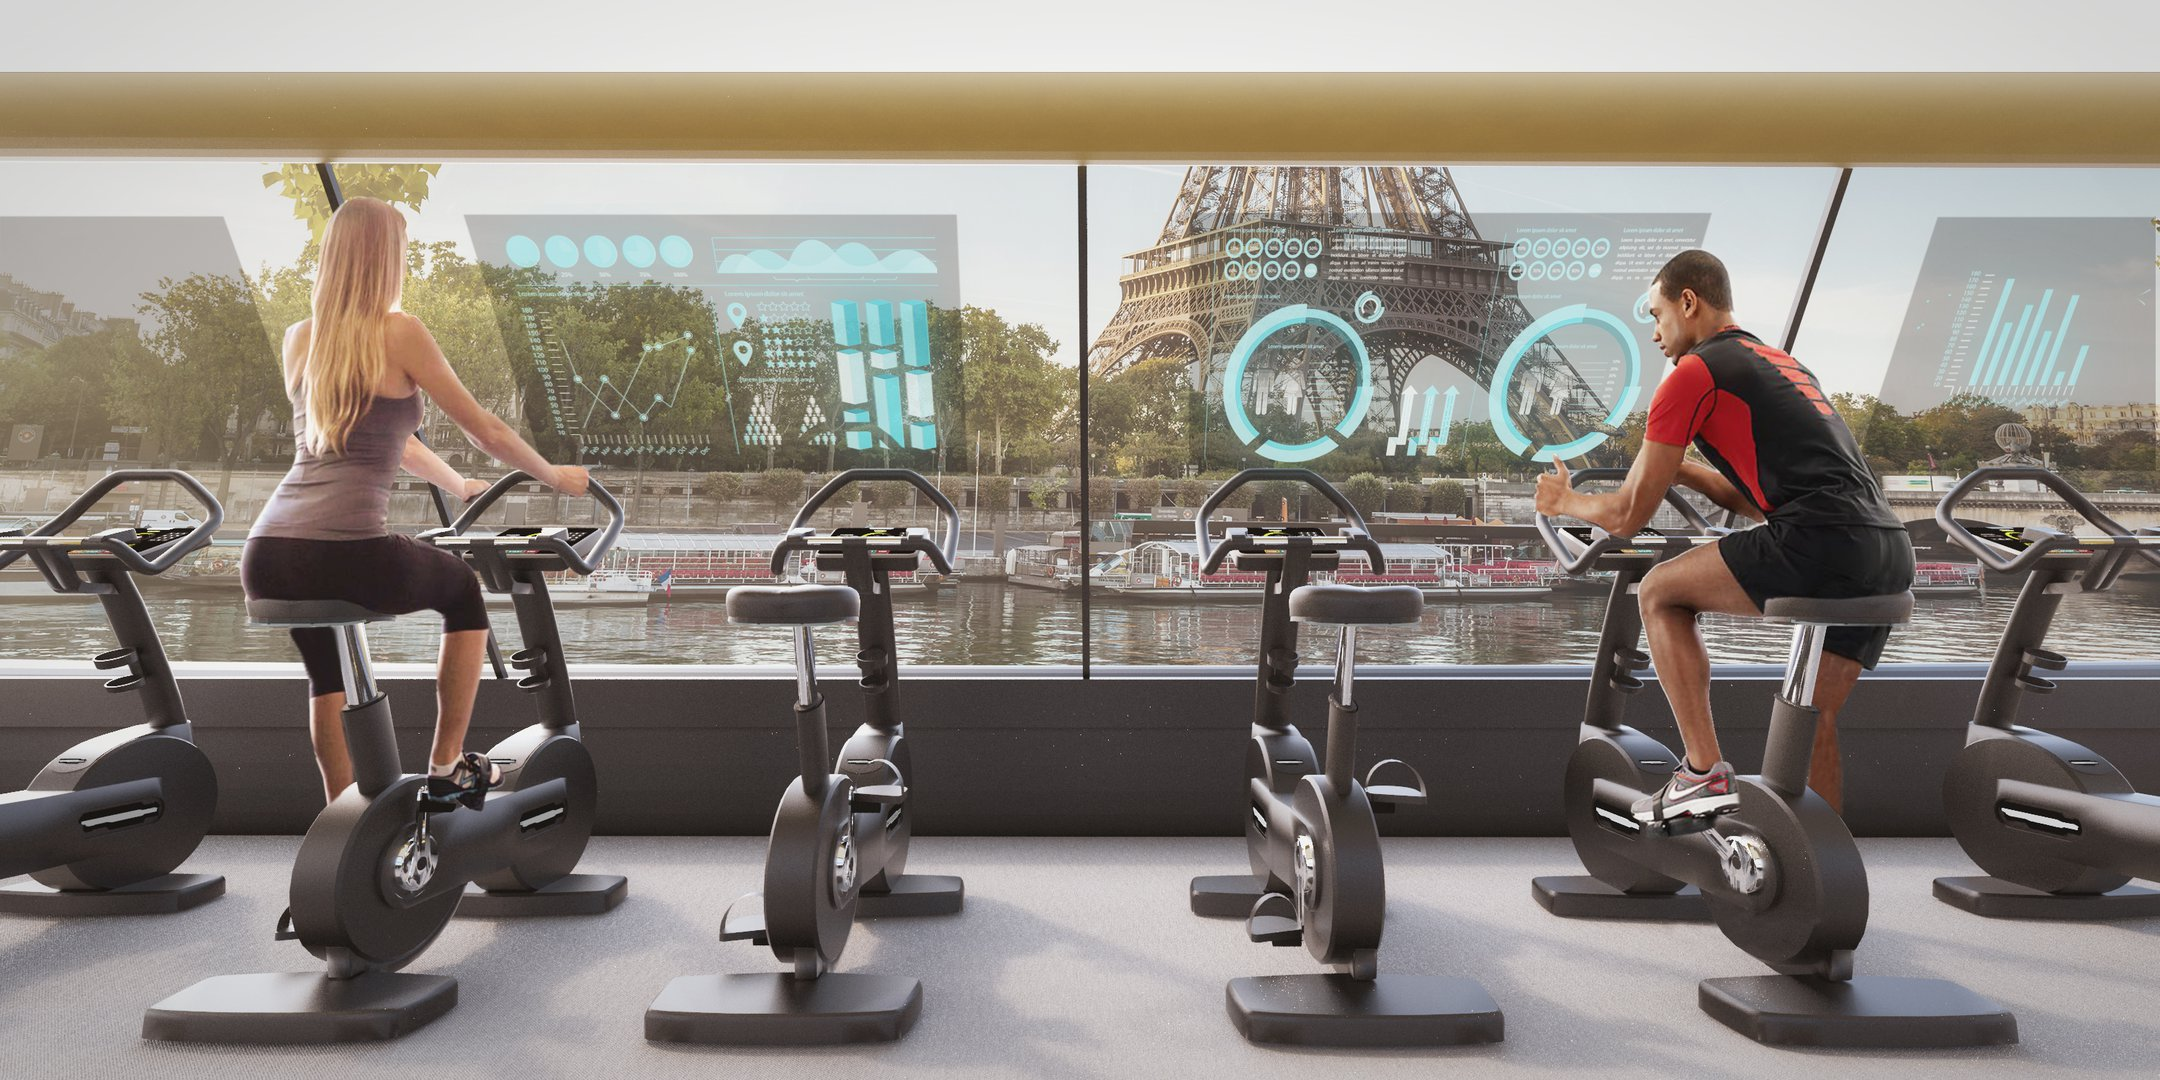 Floating gym will move on the Seine due to the energy of its visitors 18